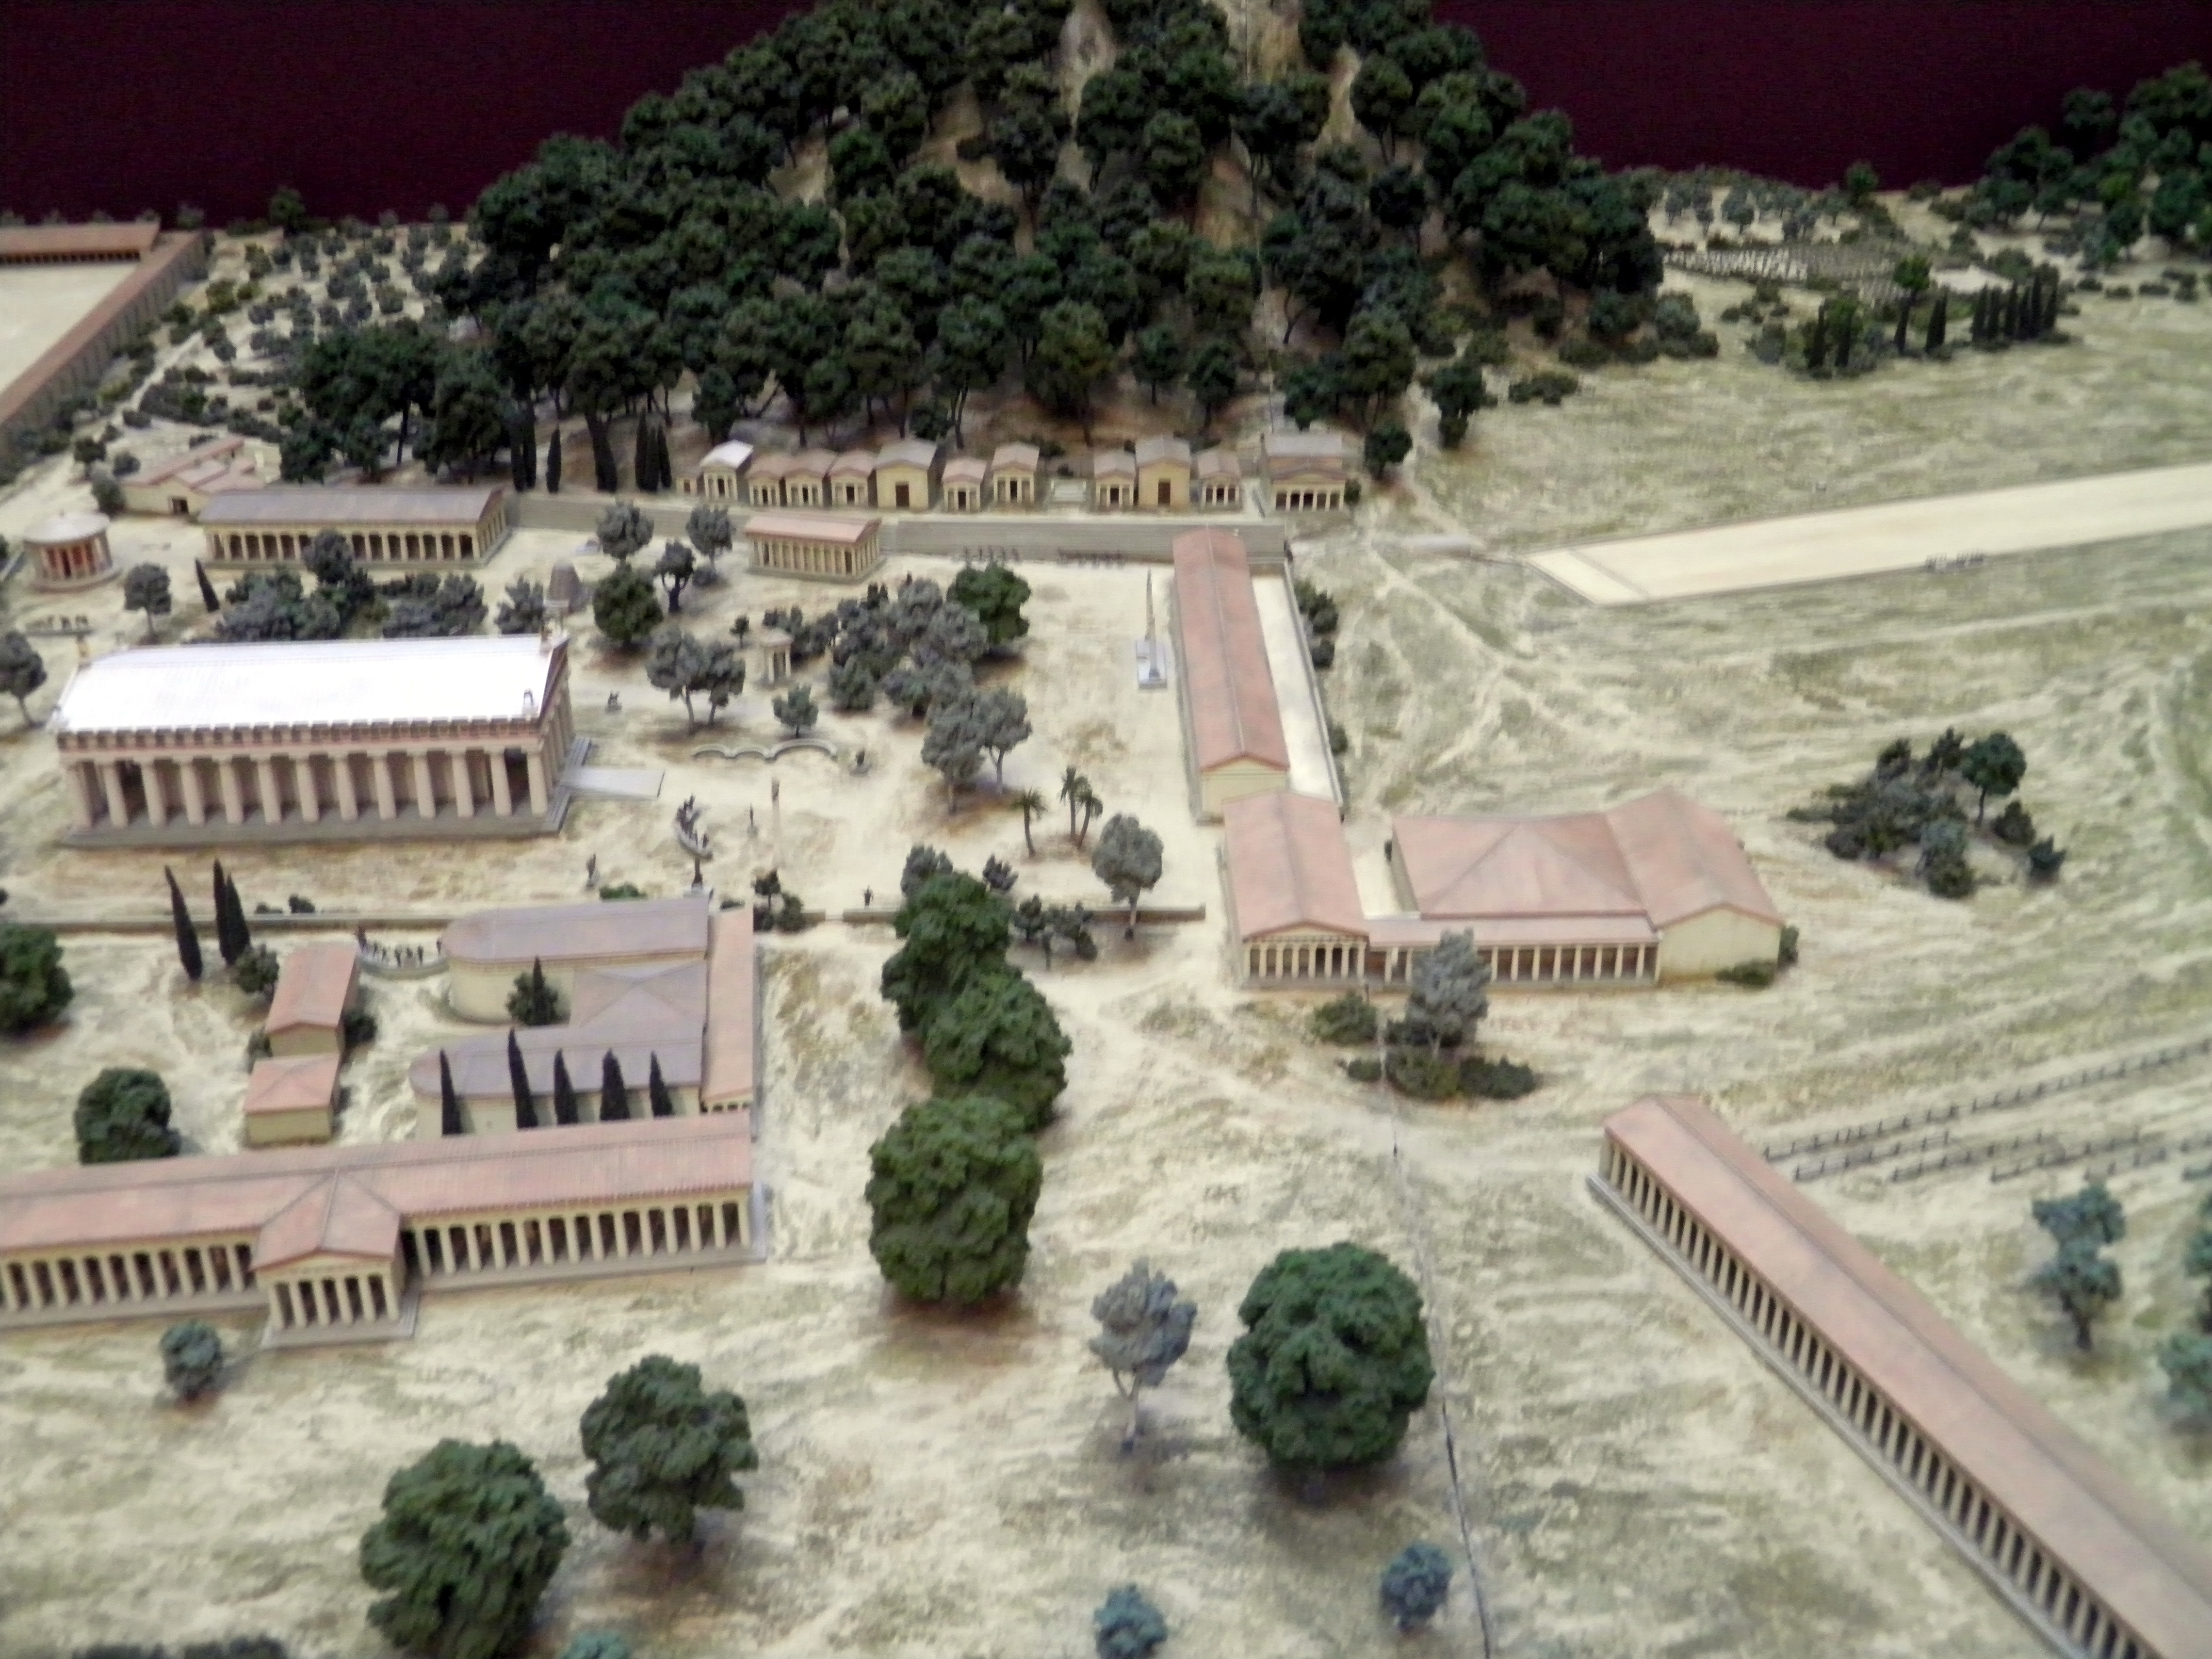 File:Model of ancient Olympia, British Museum5.jpg - Wikimedia Commons